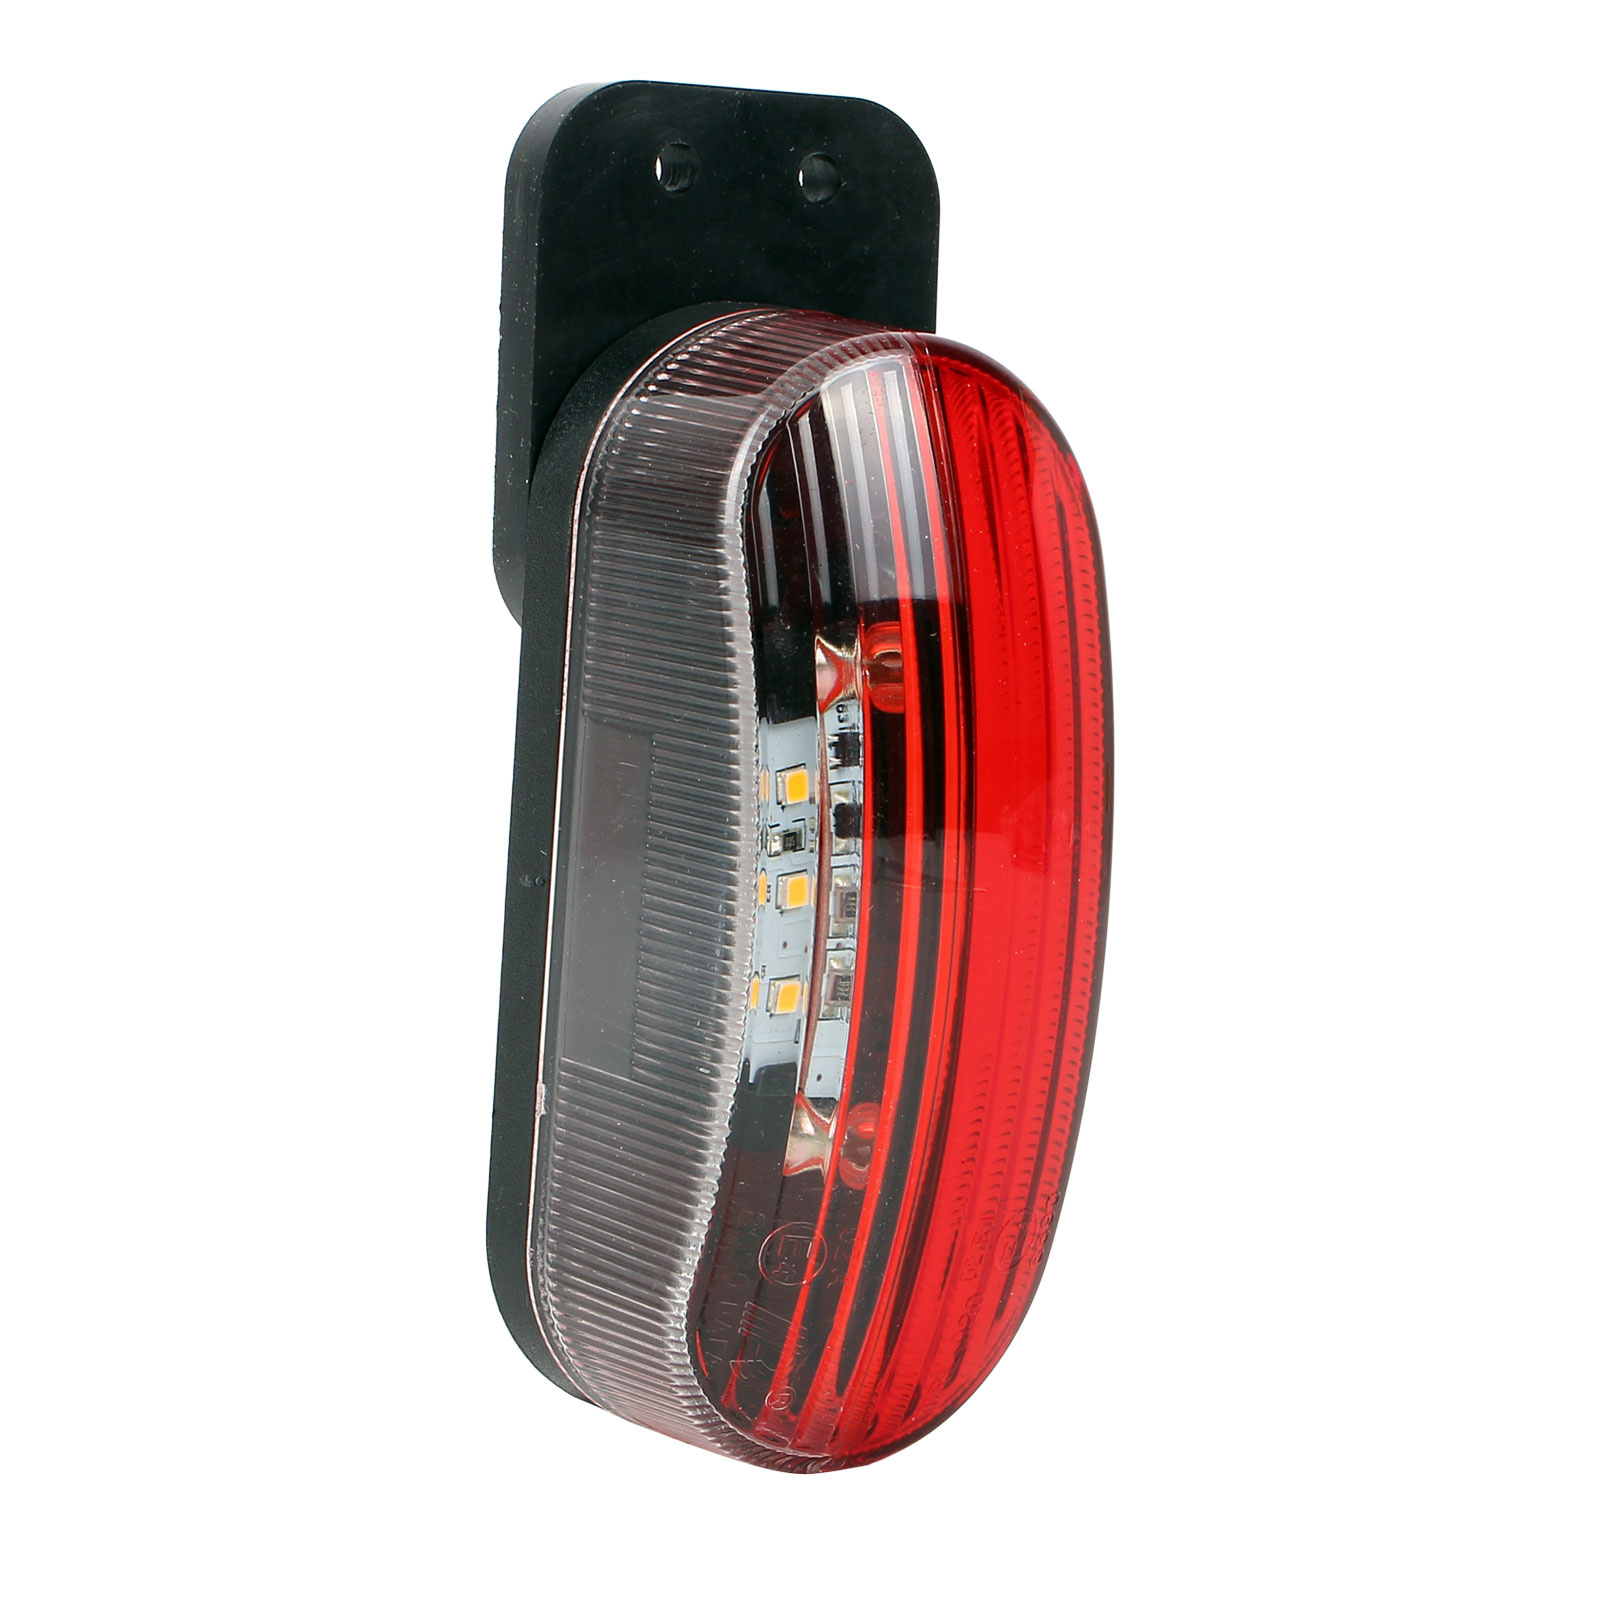 Umrissleuchte LED rot/weiß 98x42x38 mm, 12 Volt, 2 Watt, 6 LED links